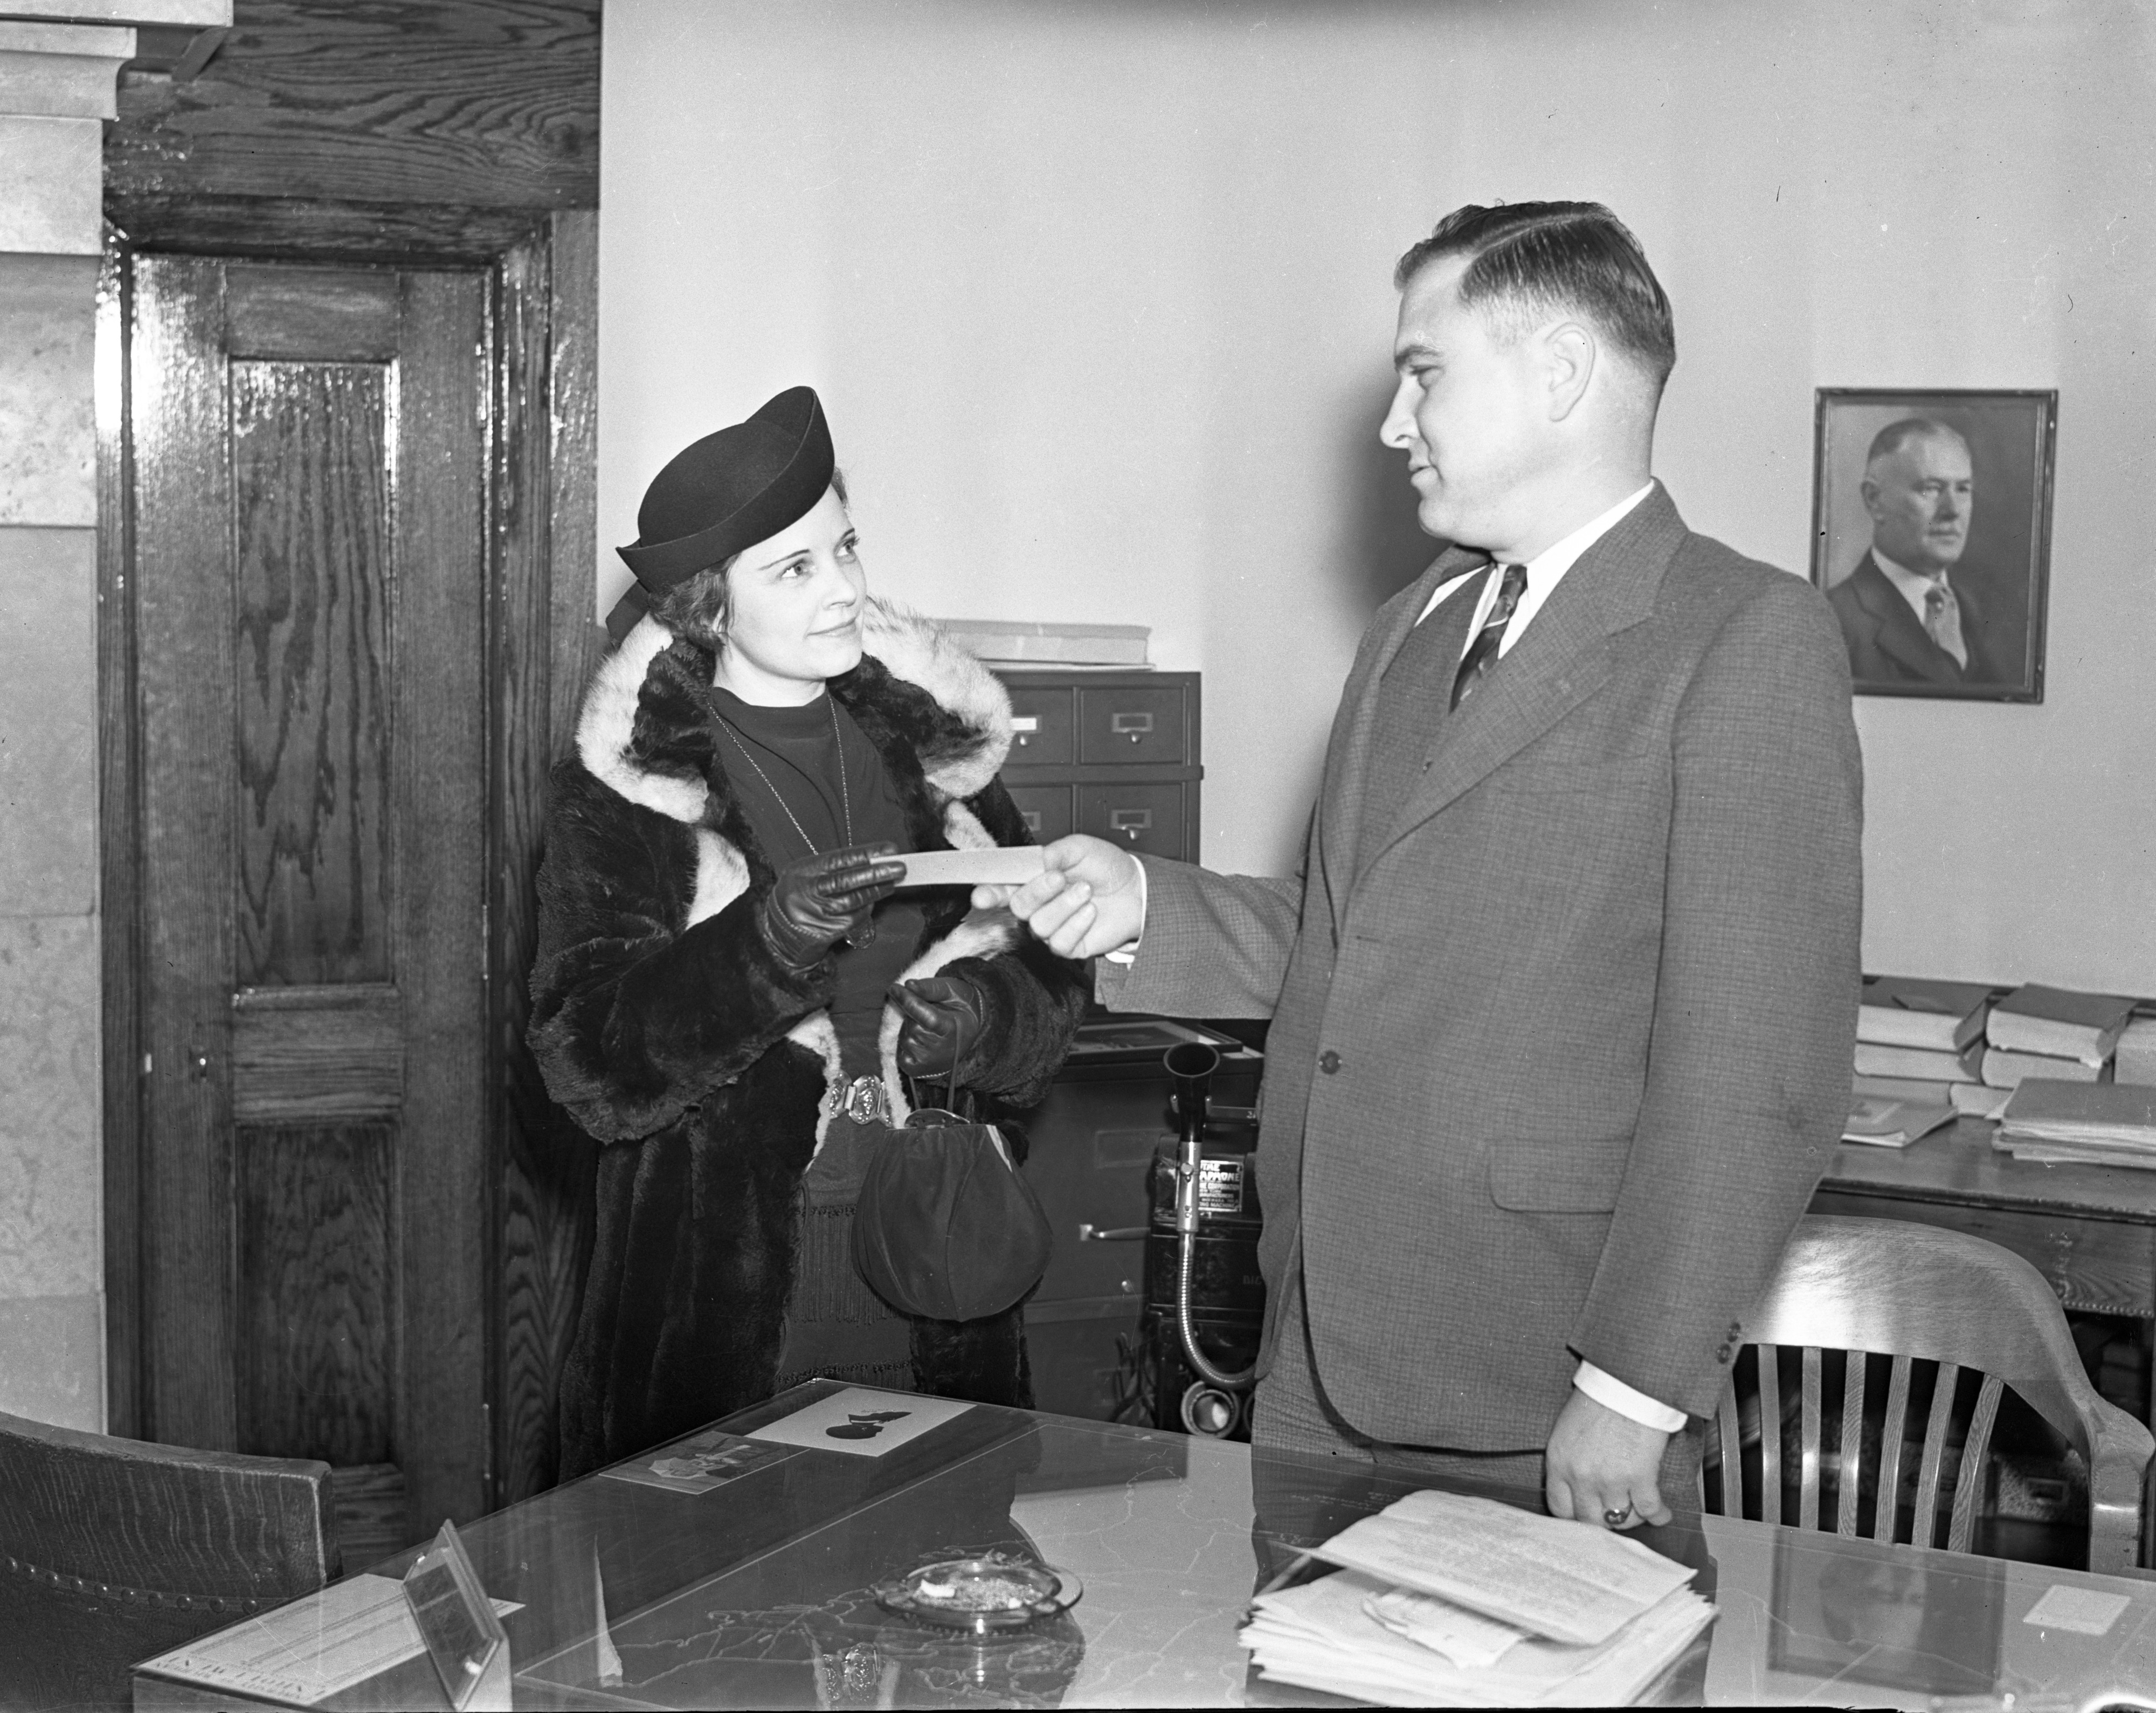 Selling a Ticket for the President's Ball, January 1938 image